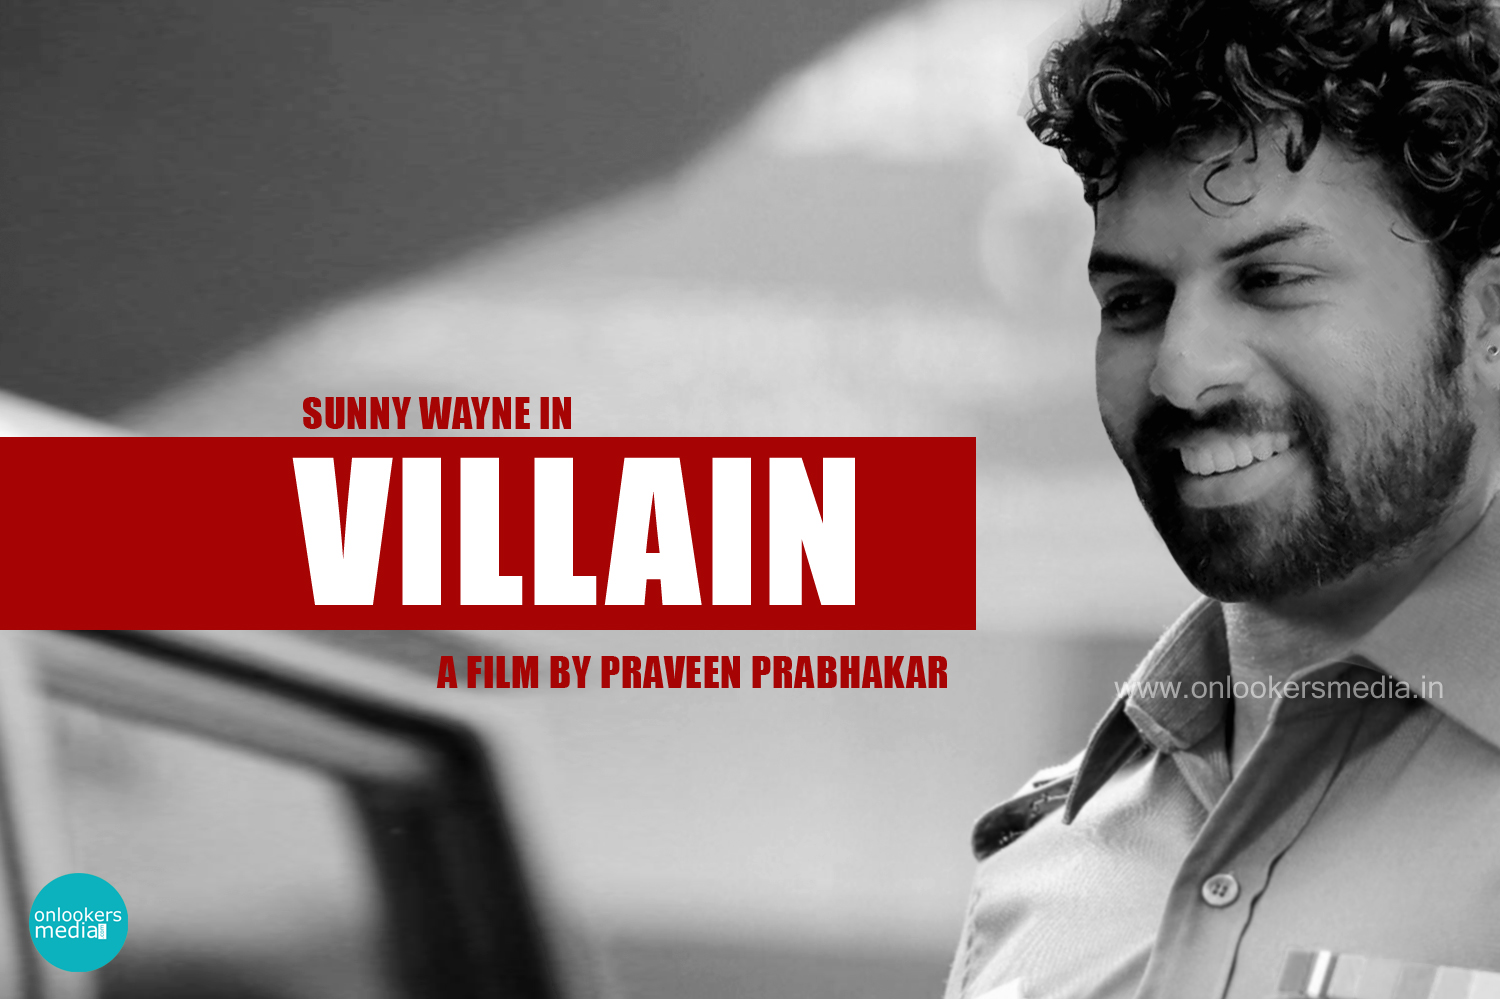 Sunny Wayne in Villain Malayalam Movie-Stills-Images-Photos-Onlookers Media